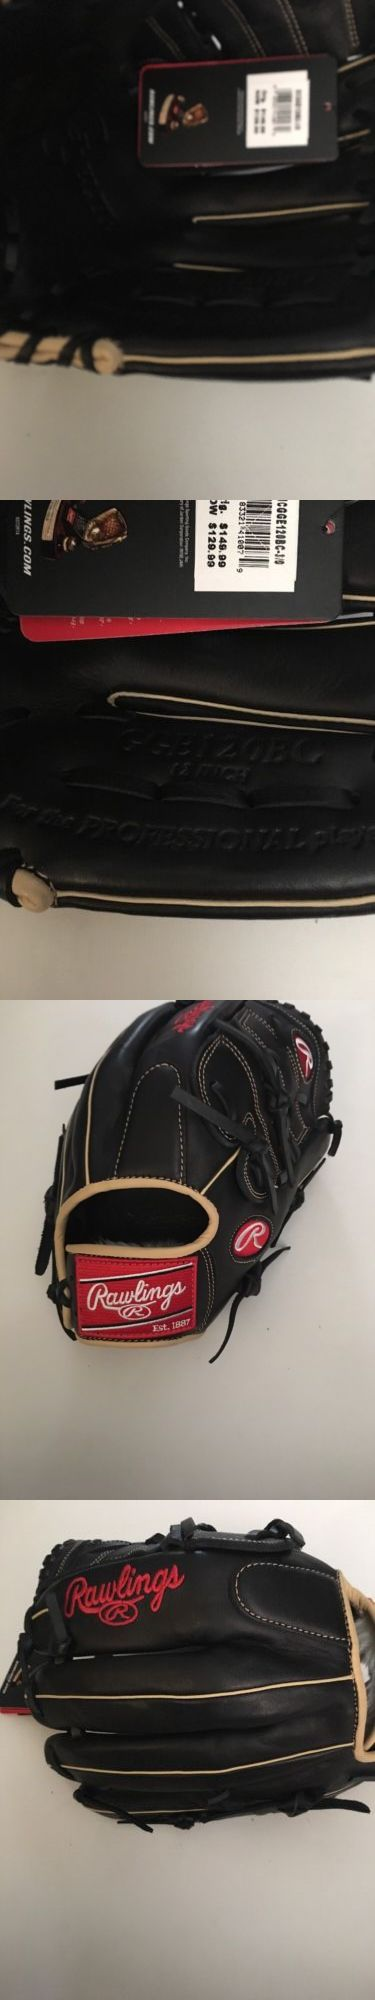 Gloves and Mitts 16030: Rawlings Gge120bc Black Beige Rht Baseball Glove Nwt -> BUY IT NOW ONLY: $69.99 on eBay!